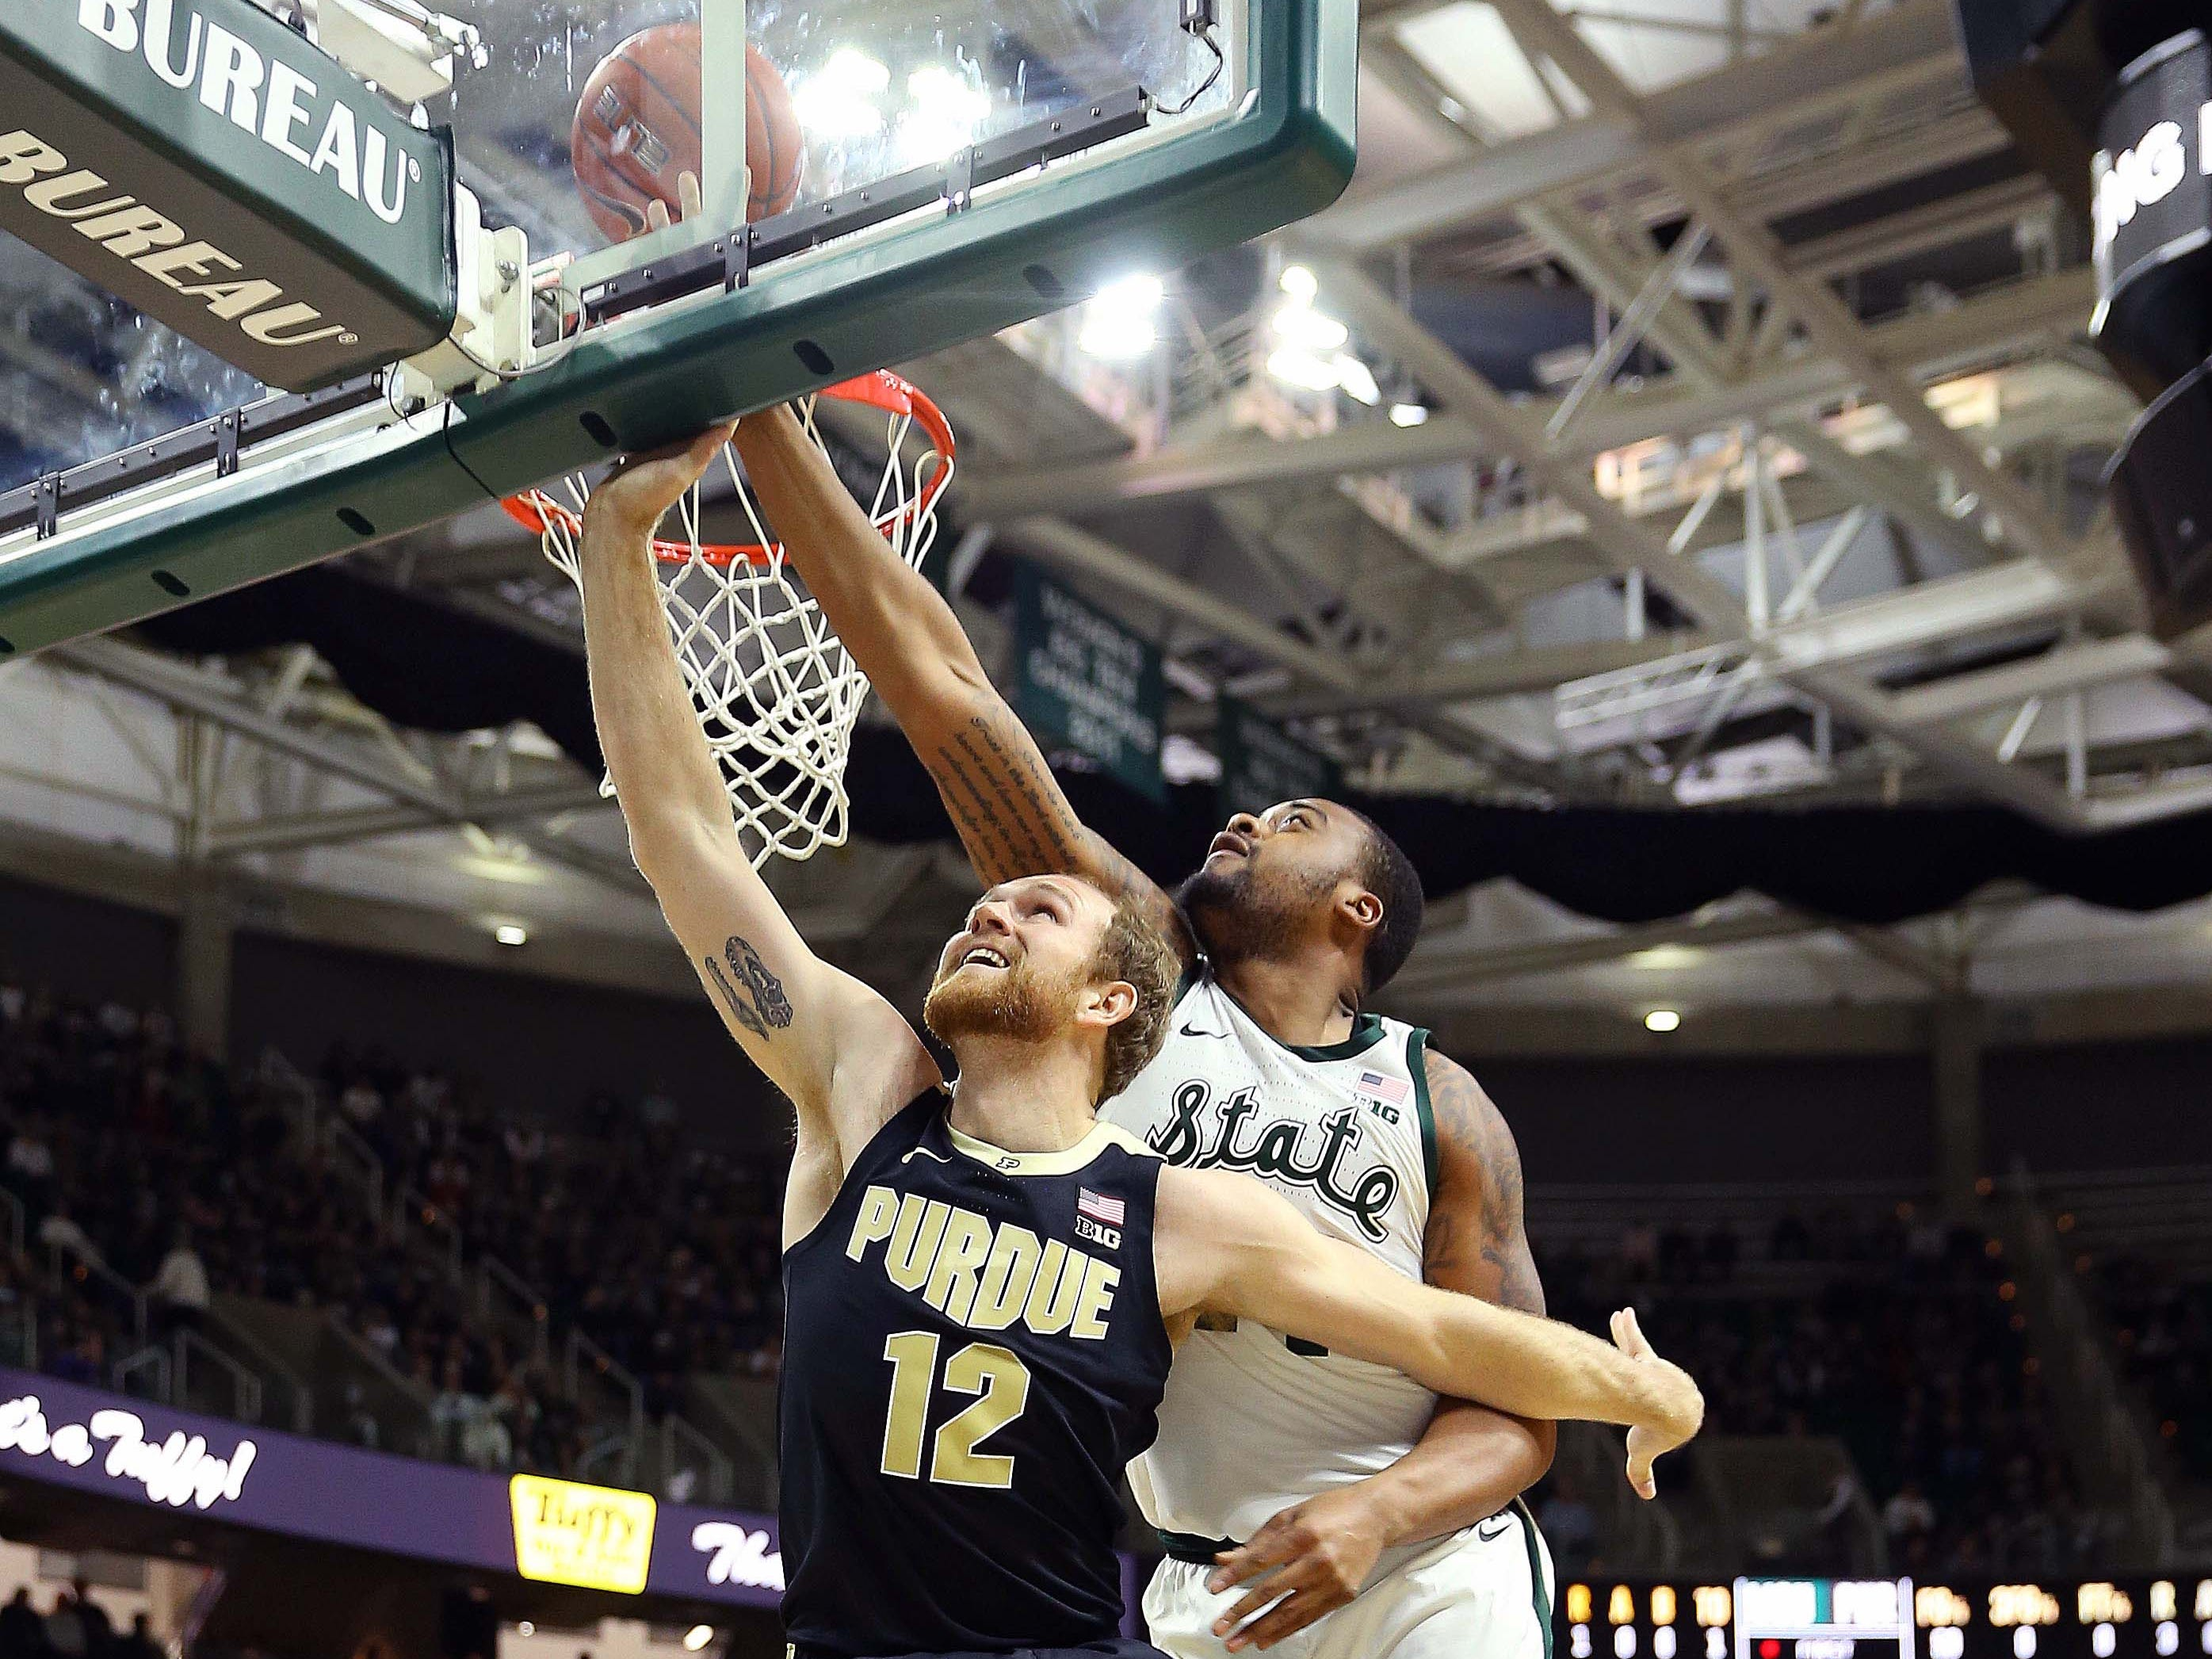 Purdue Boilermakers forward Evan Boudreaux (12) lays the ball up in front of Michigan State Spartans forward Nick Ward (44) during the first half of a game at the Breslin Center.